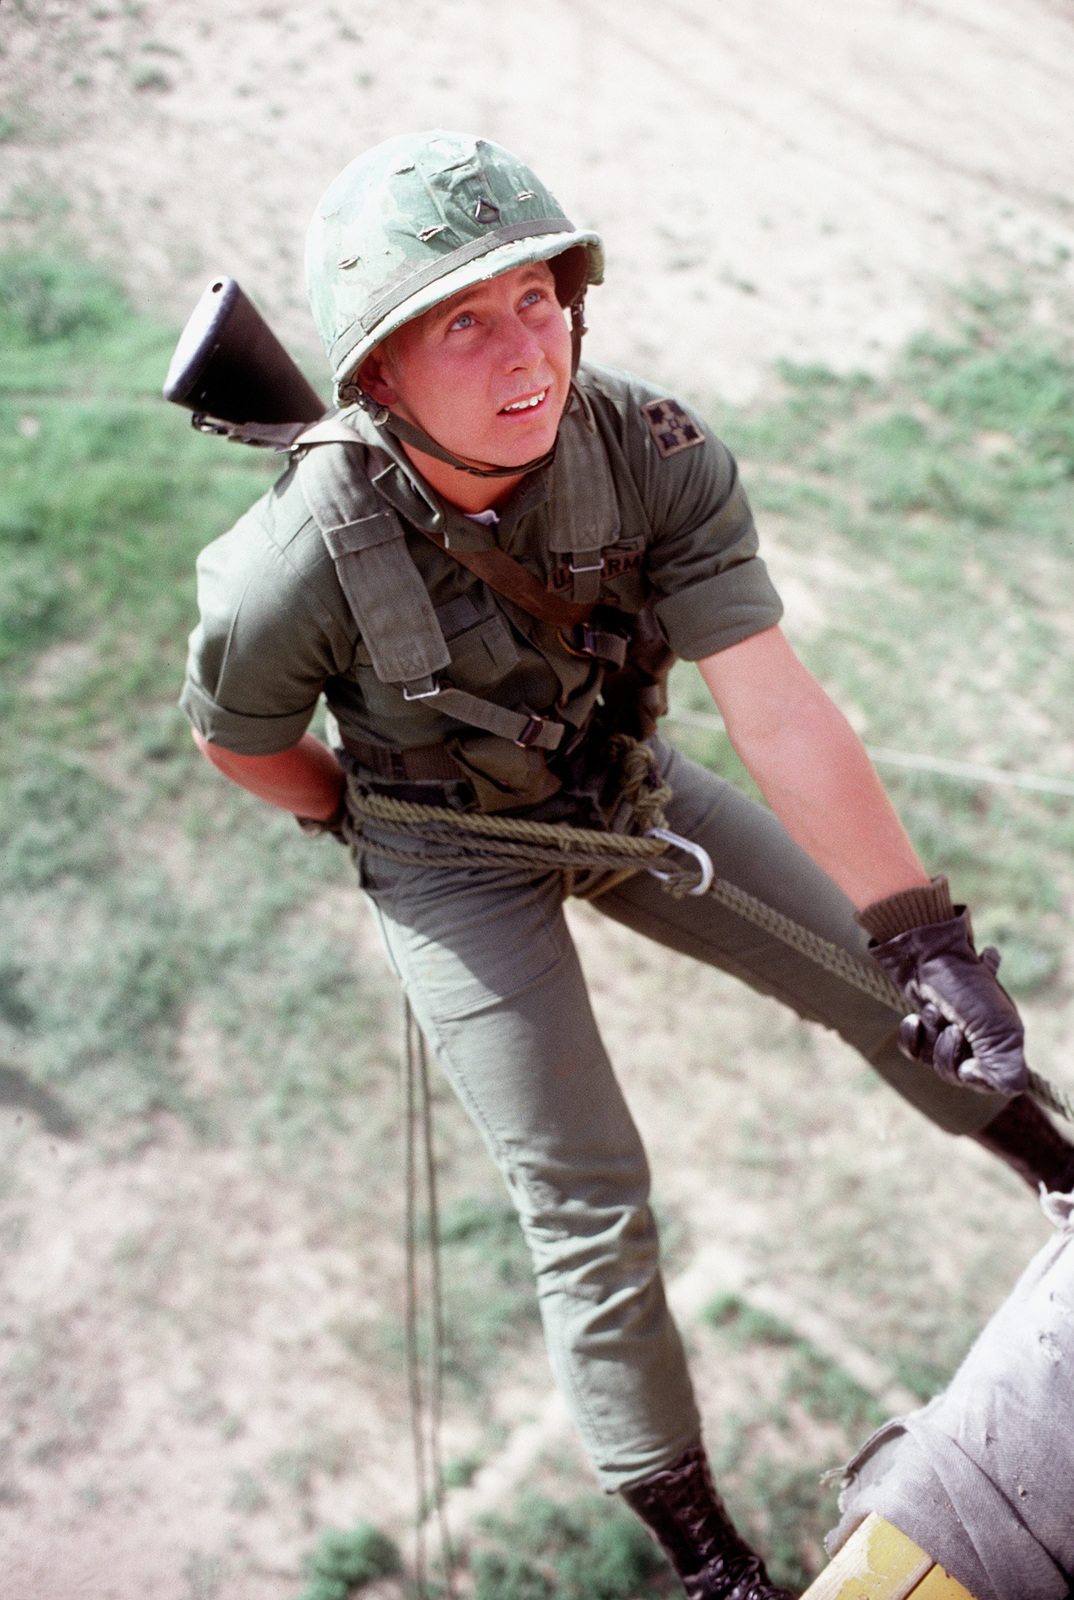 A U.S. Army soldier practices rappelling from a tower during a field training exercise